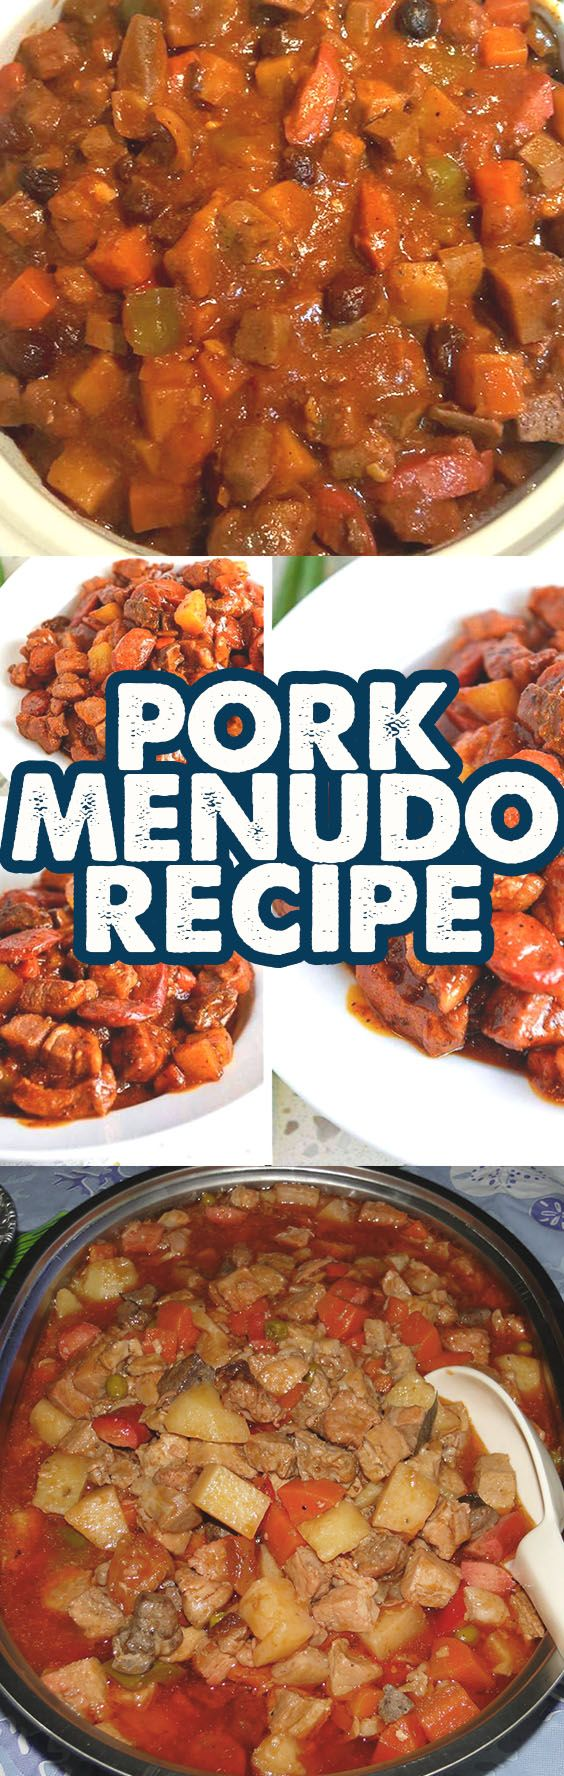 The Pork Menudo Recipe originated during the Spanish Colonization but this dish is a true Filipino dish of sauteed pork meat, potatoes, and carrots, raisins, and beef or pork liver. This Recipe is far different from Kaldereta and Afritada.